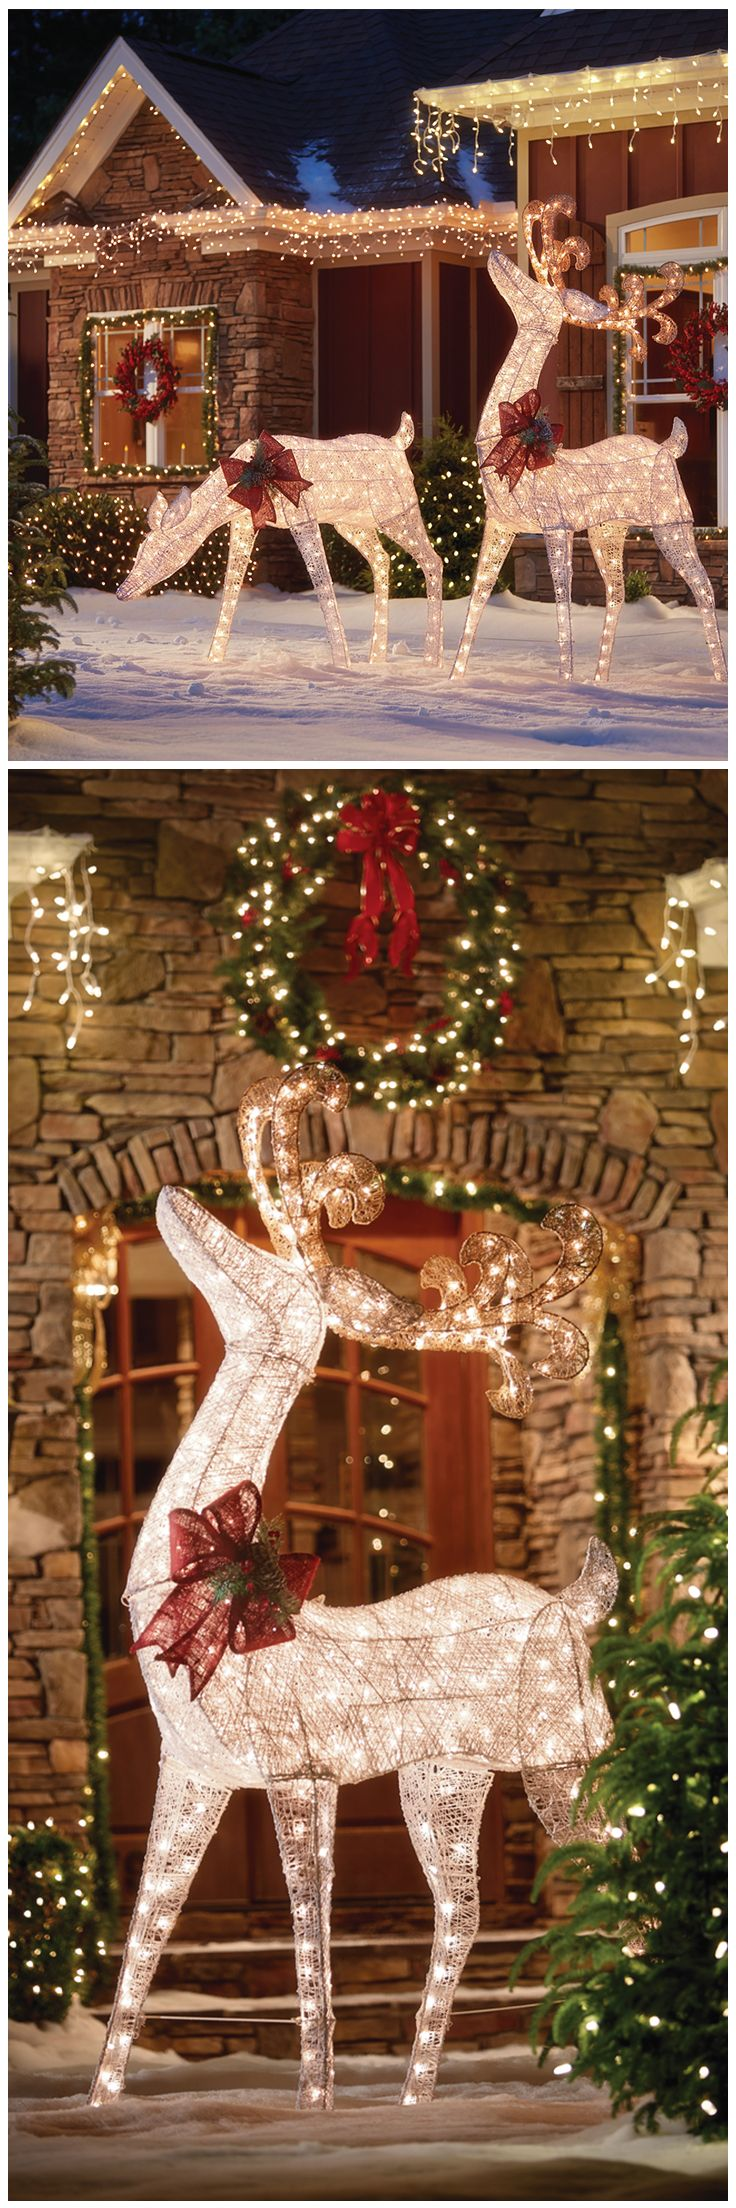 these luminous deer figures will add a classic rustic charm to your outdoor christmas dcor - Outdoor Christmas Decorations